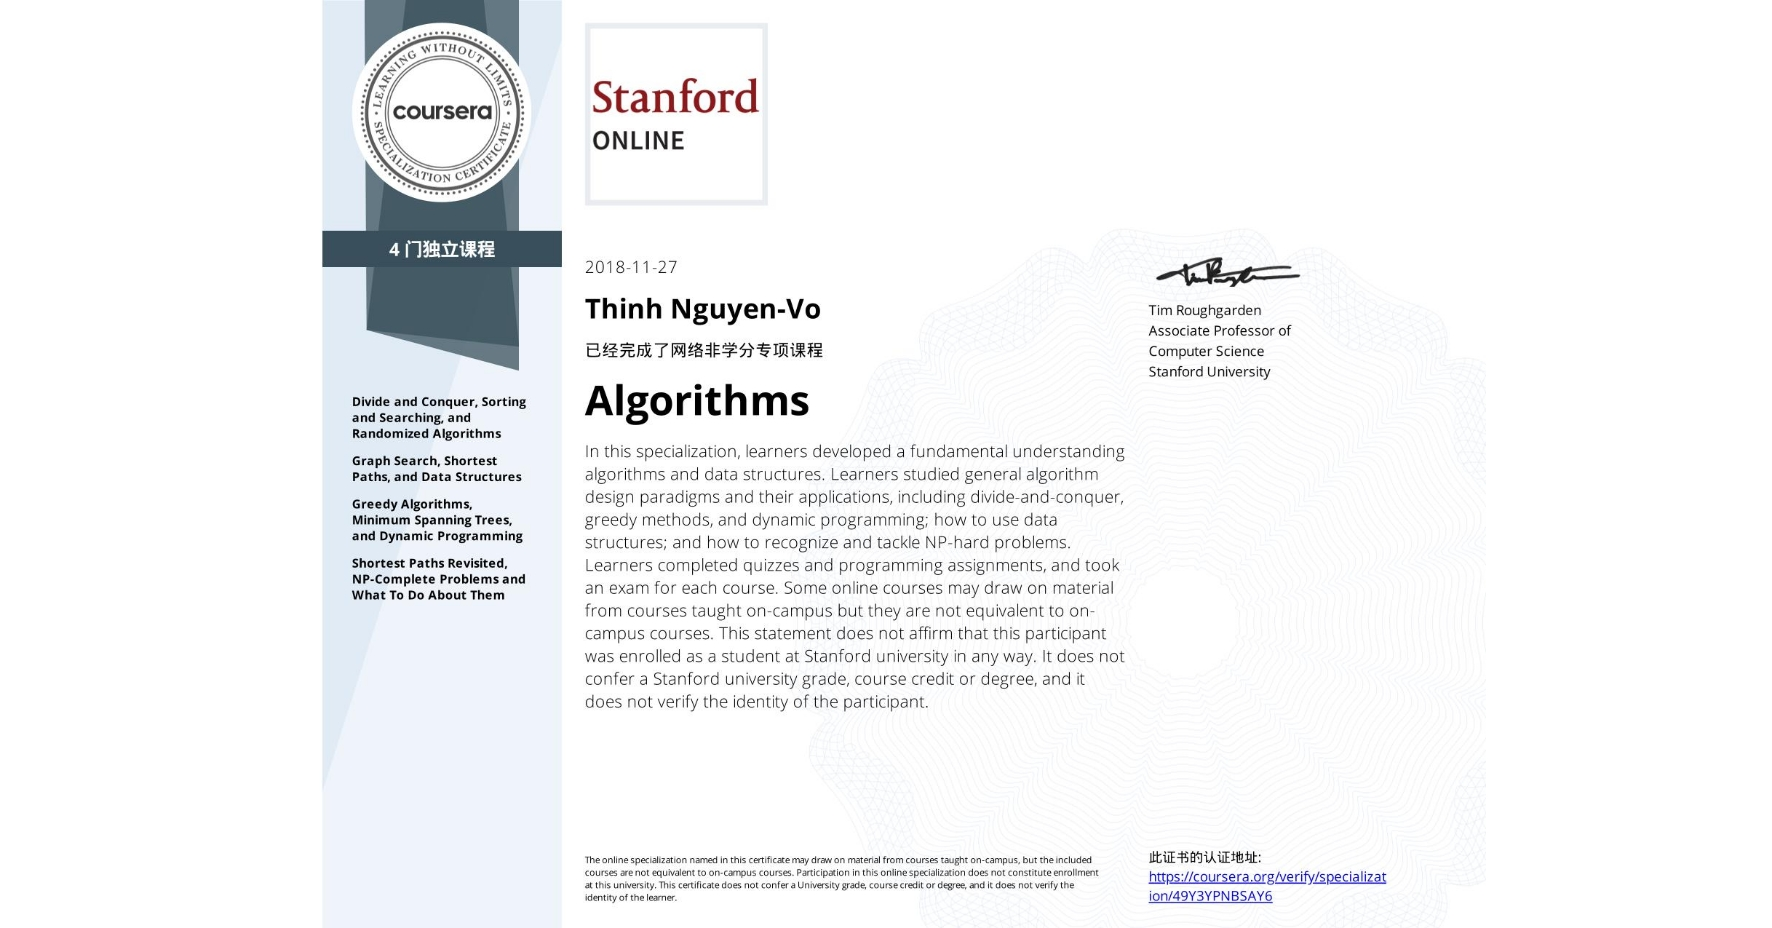 View certificate for Thinh Nguyen-Vo, Algorithms, offered through Coursera. In this specialization, learners developed a fundamental understanding algorithms and data structures. Learners studied general algorithm design paradigms and their applications, including divide-and-conquer, greedy methods, and dynamic programming; how to use data structures; and how to recognize and tackle NP-hard problems.  Learners completed quizzes and programming assignments, and took an exam for each course.  Some online courses may draw on material from courses taught on-campus but they are not equivalent to on-campus courses. This statement does not affirm that this participant was enrolled as a student at Stanford university in any way. It does not confer a Stanford university grade, course credit or degree, and it does not verify the identity of the participant.